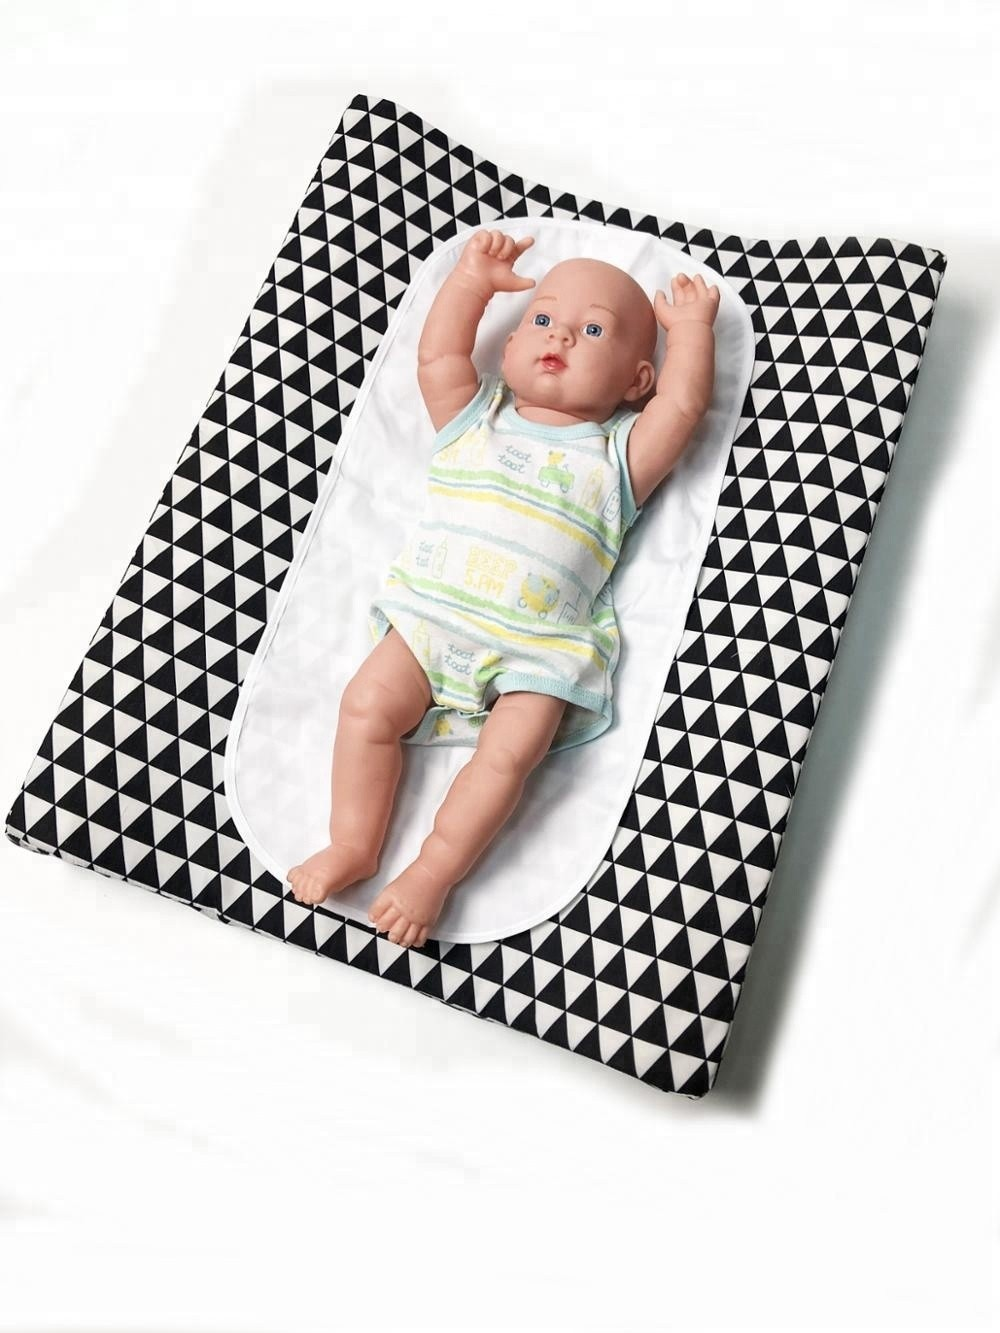 Infant Home and Travel Change Pad Cover Cotton Terry Change Mat Breathable Manufacturers, Infant Home and Travel Change Pad Cover Cotton Terry Change Mat Breathable Factory, Supply Infant Home and Travel Change Pad Cover Cotton Terry Change Mat Breathable